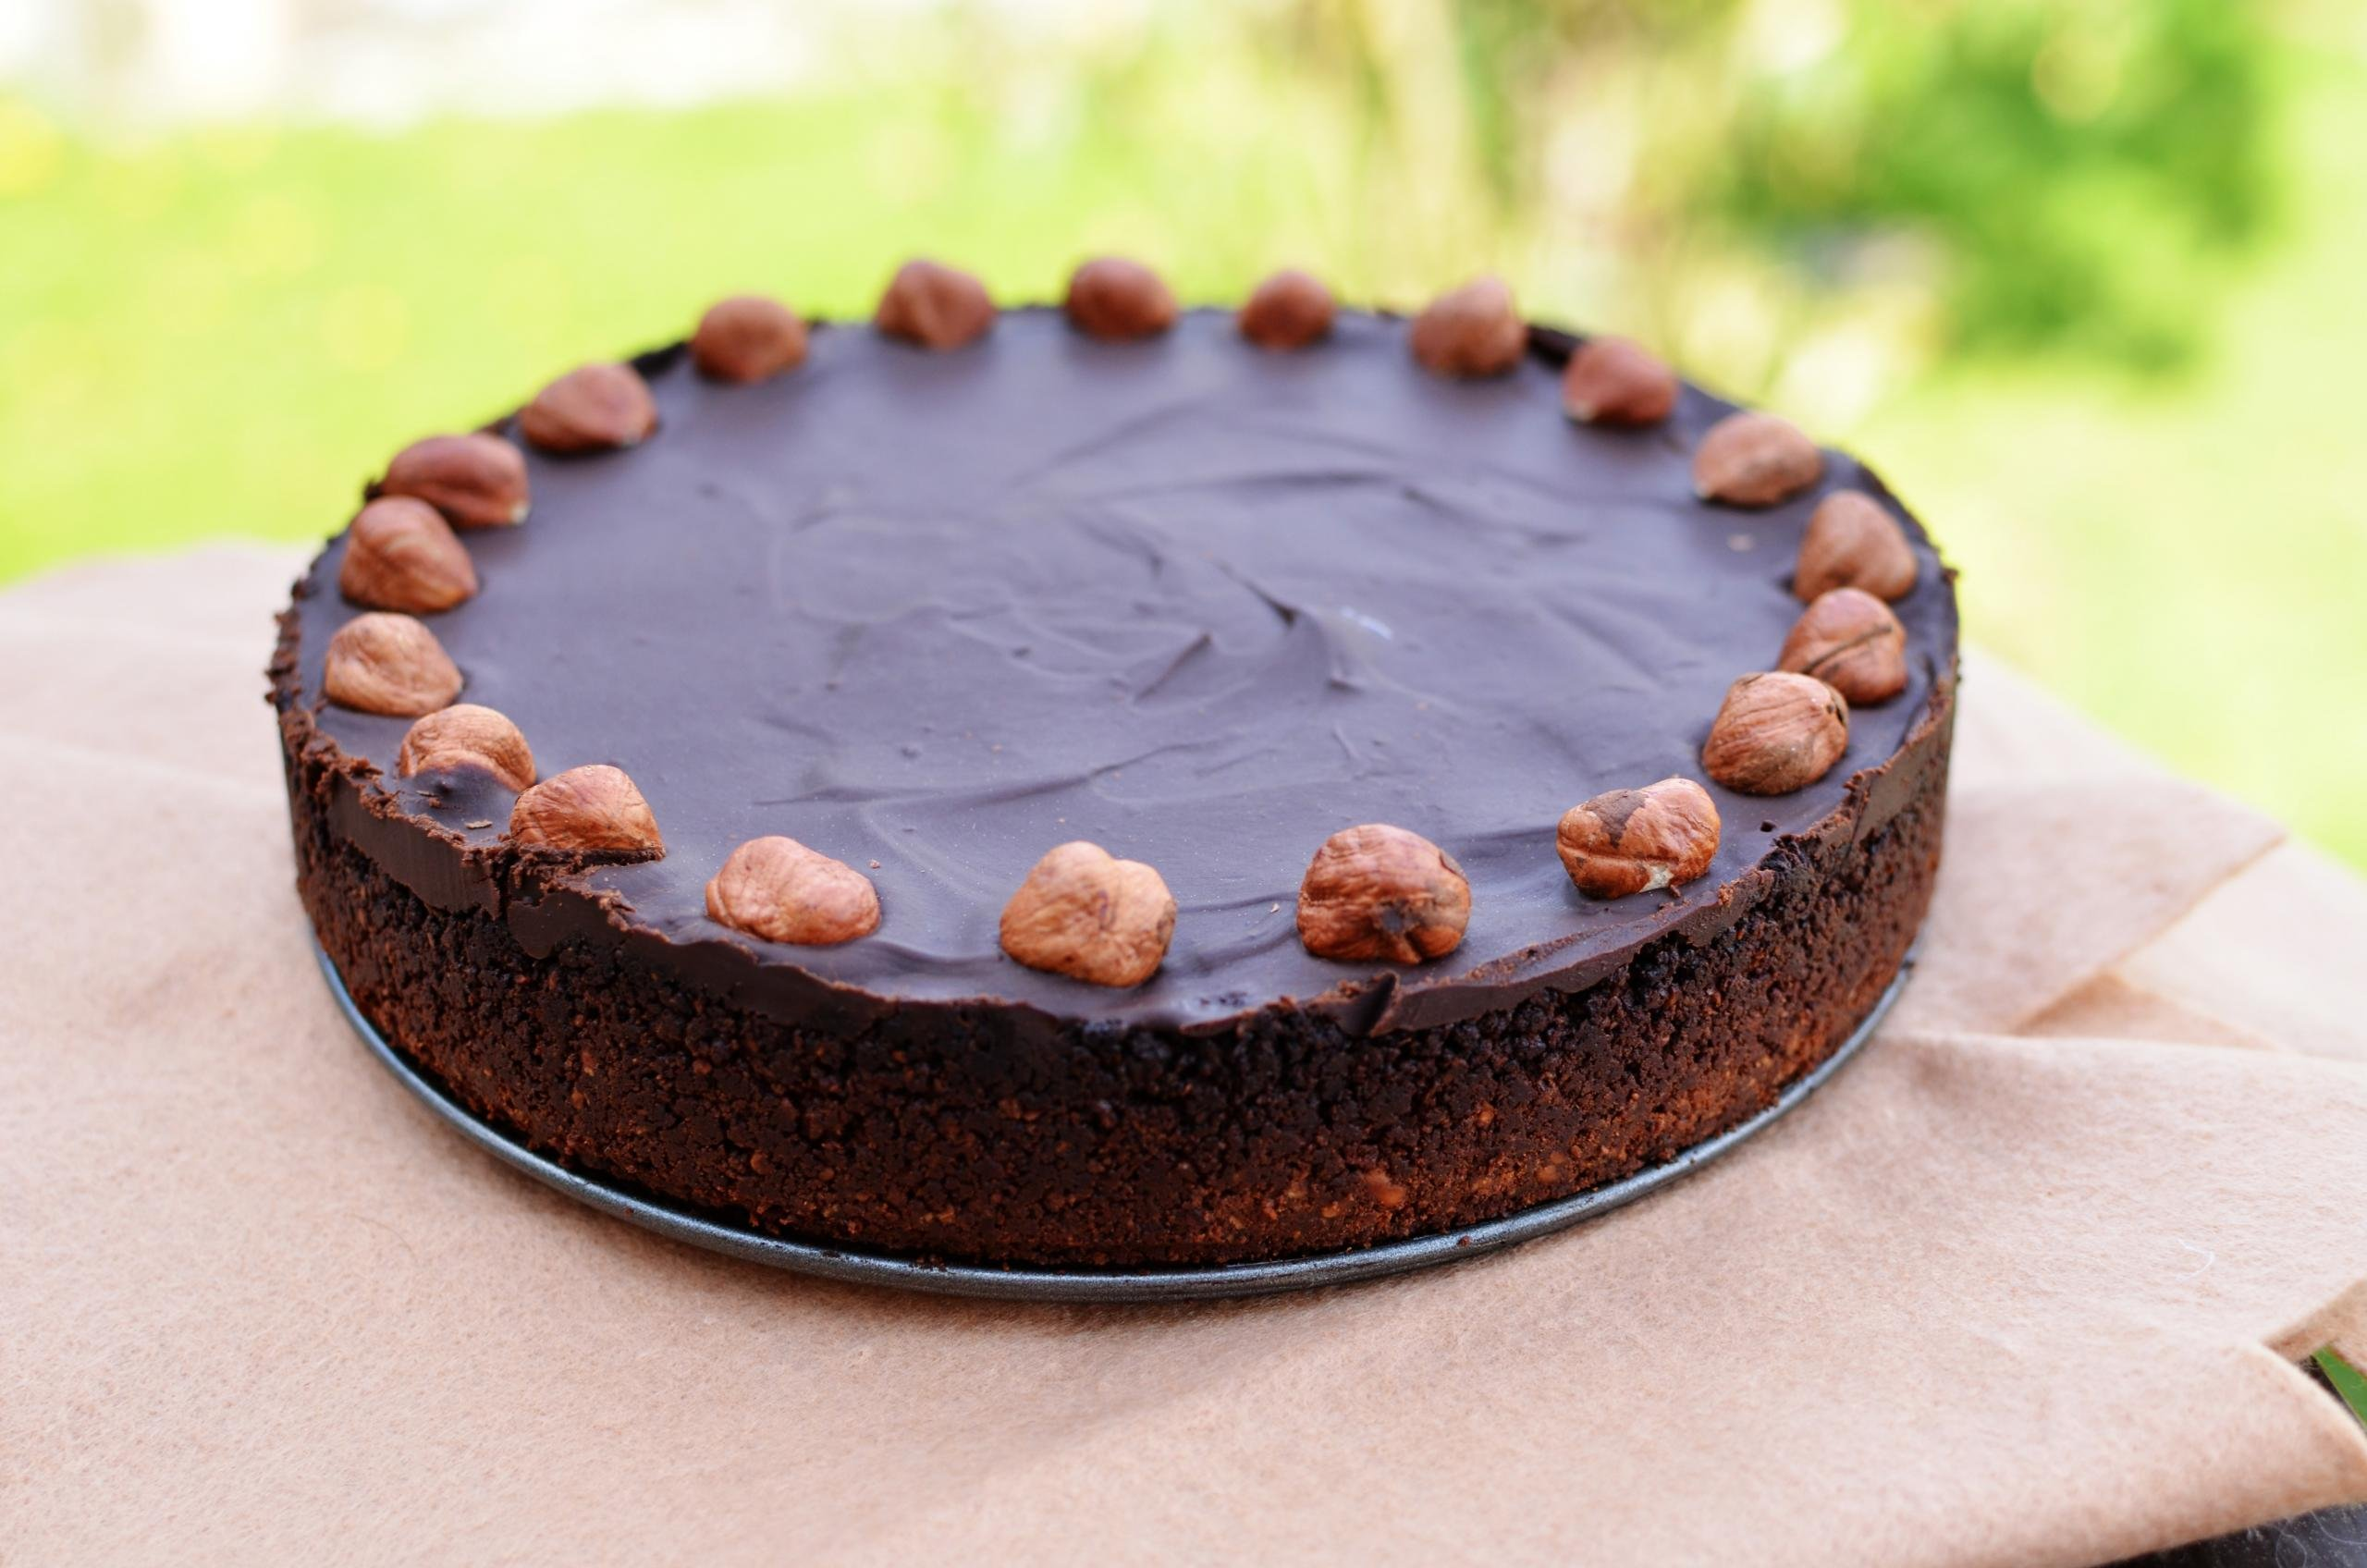 Chocolate Hazelnut Tart on a tray